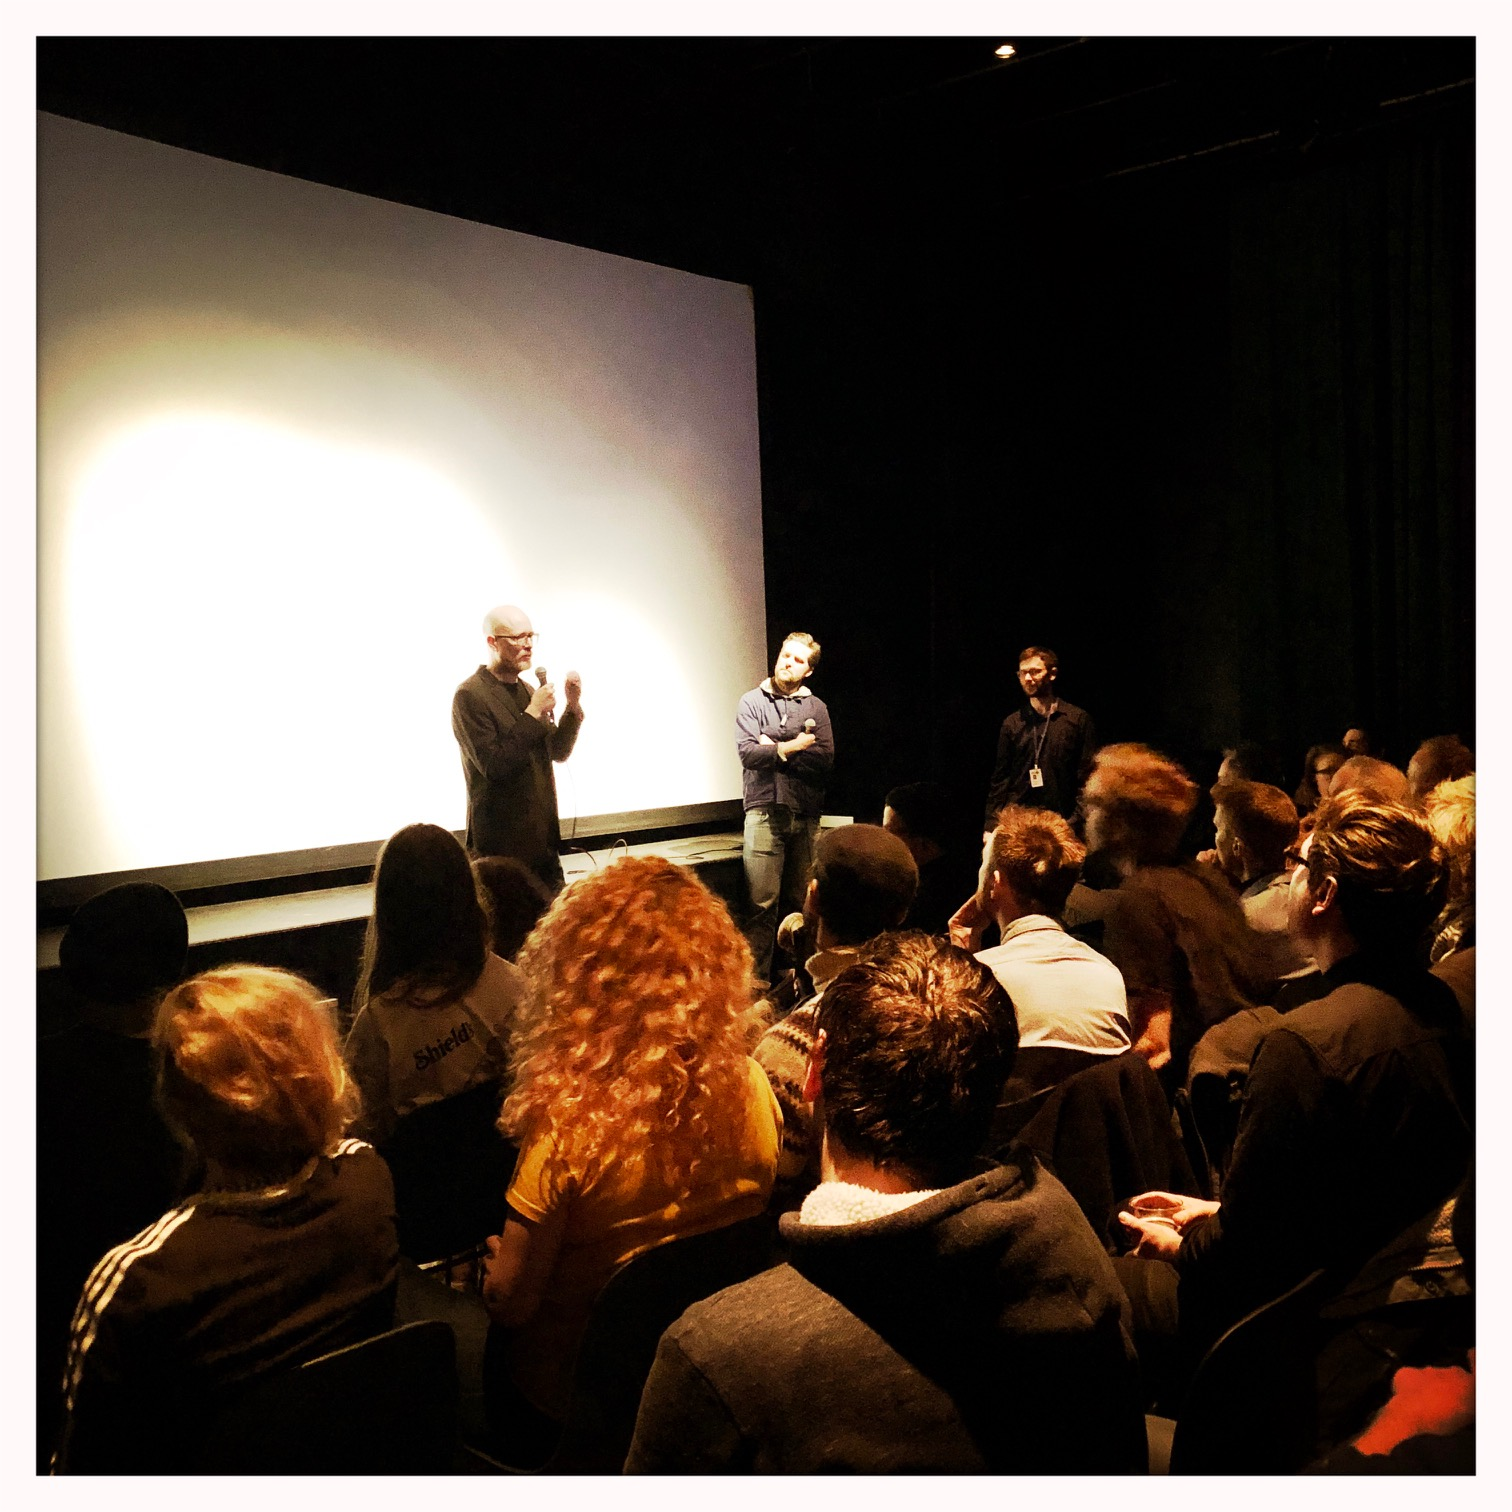 director_finlay_pretsell_introducing_time_trial_at_danish_premiere_cph_dox_1.jpg